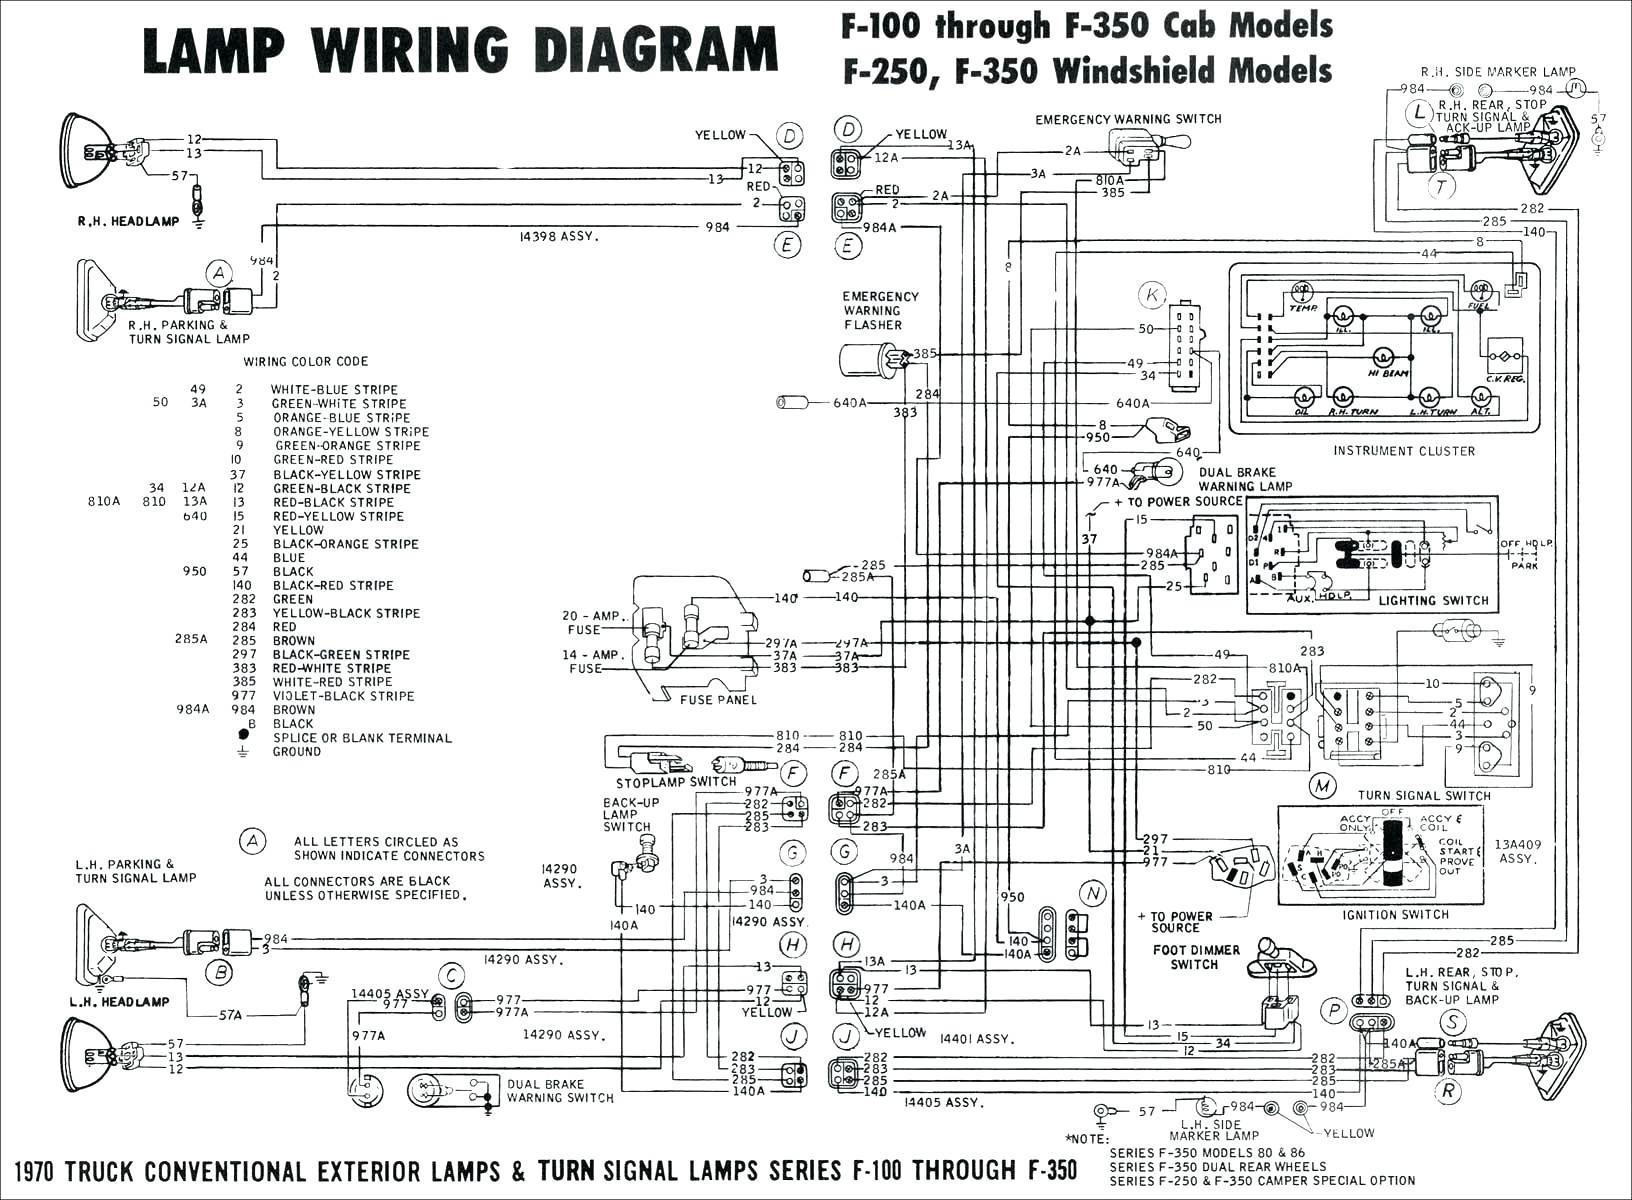 2007 Honda Accord Engine Diagram 93 Civic Wiring Diagram Wiring Diagram toolbox Of 2007 Honda Accord Engine Diagram